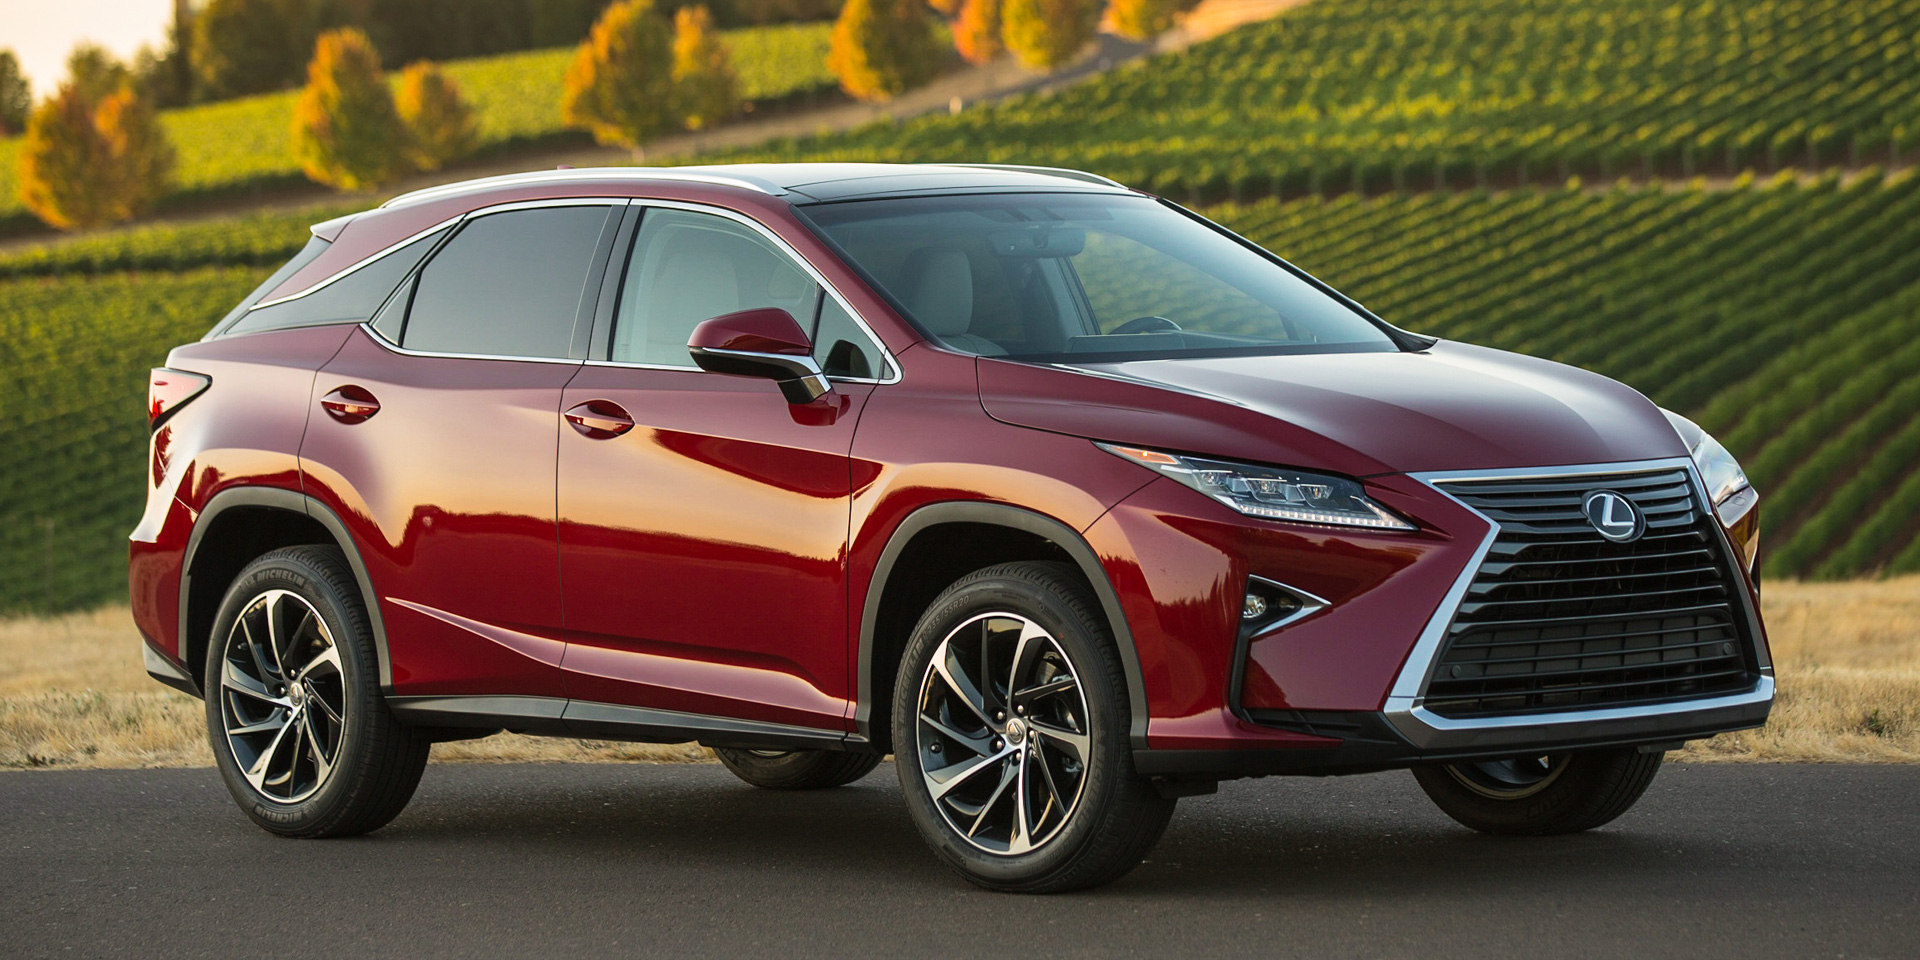 2018 Lexus Rx Vehicles On Display Chicago Auto Show